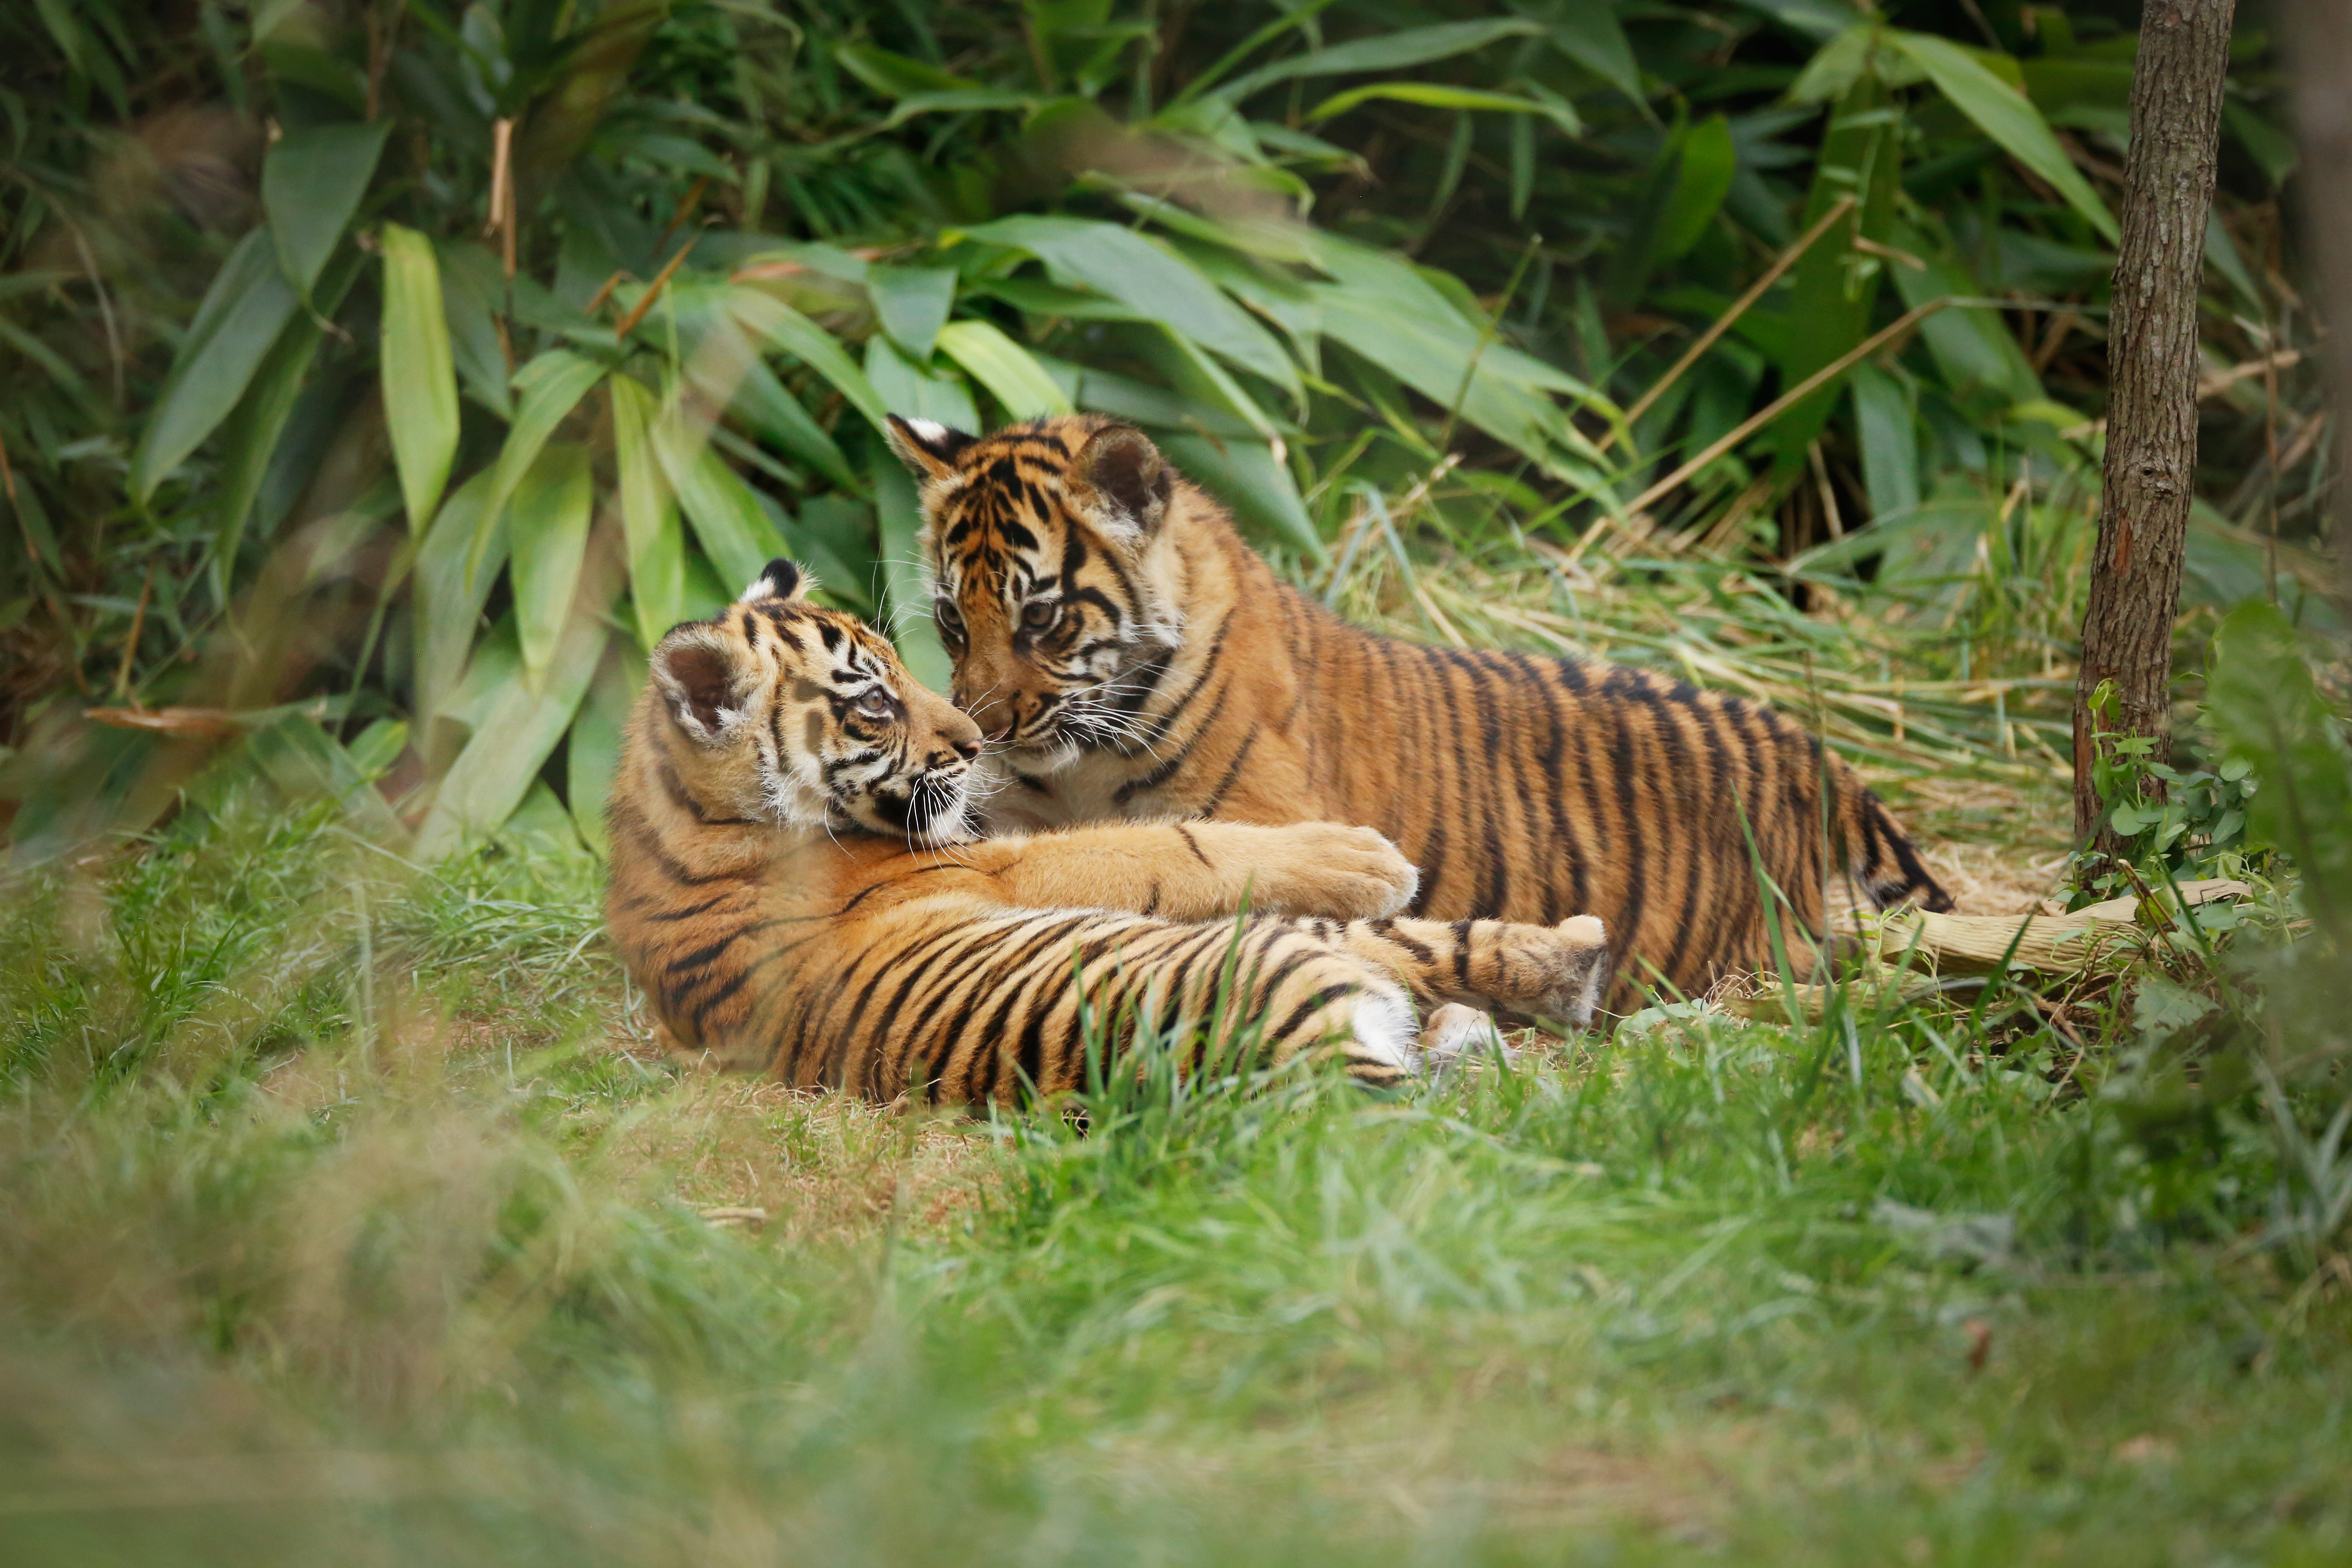 Tiger Territory | Zoological Society of London (ZSL)